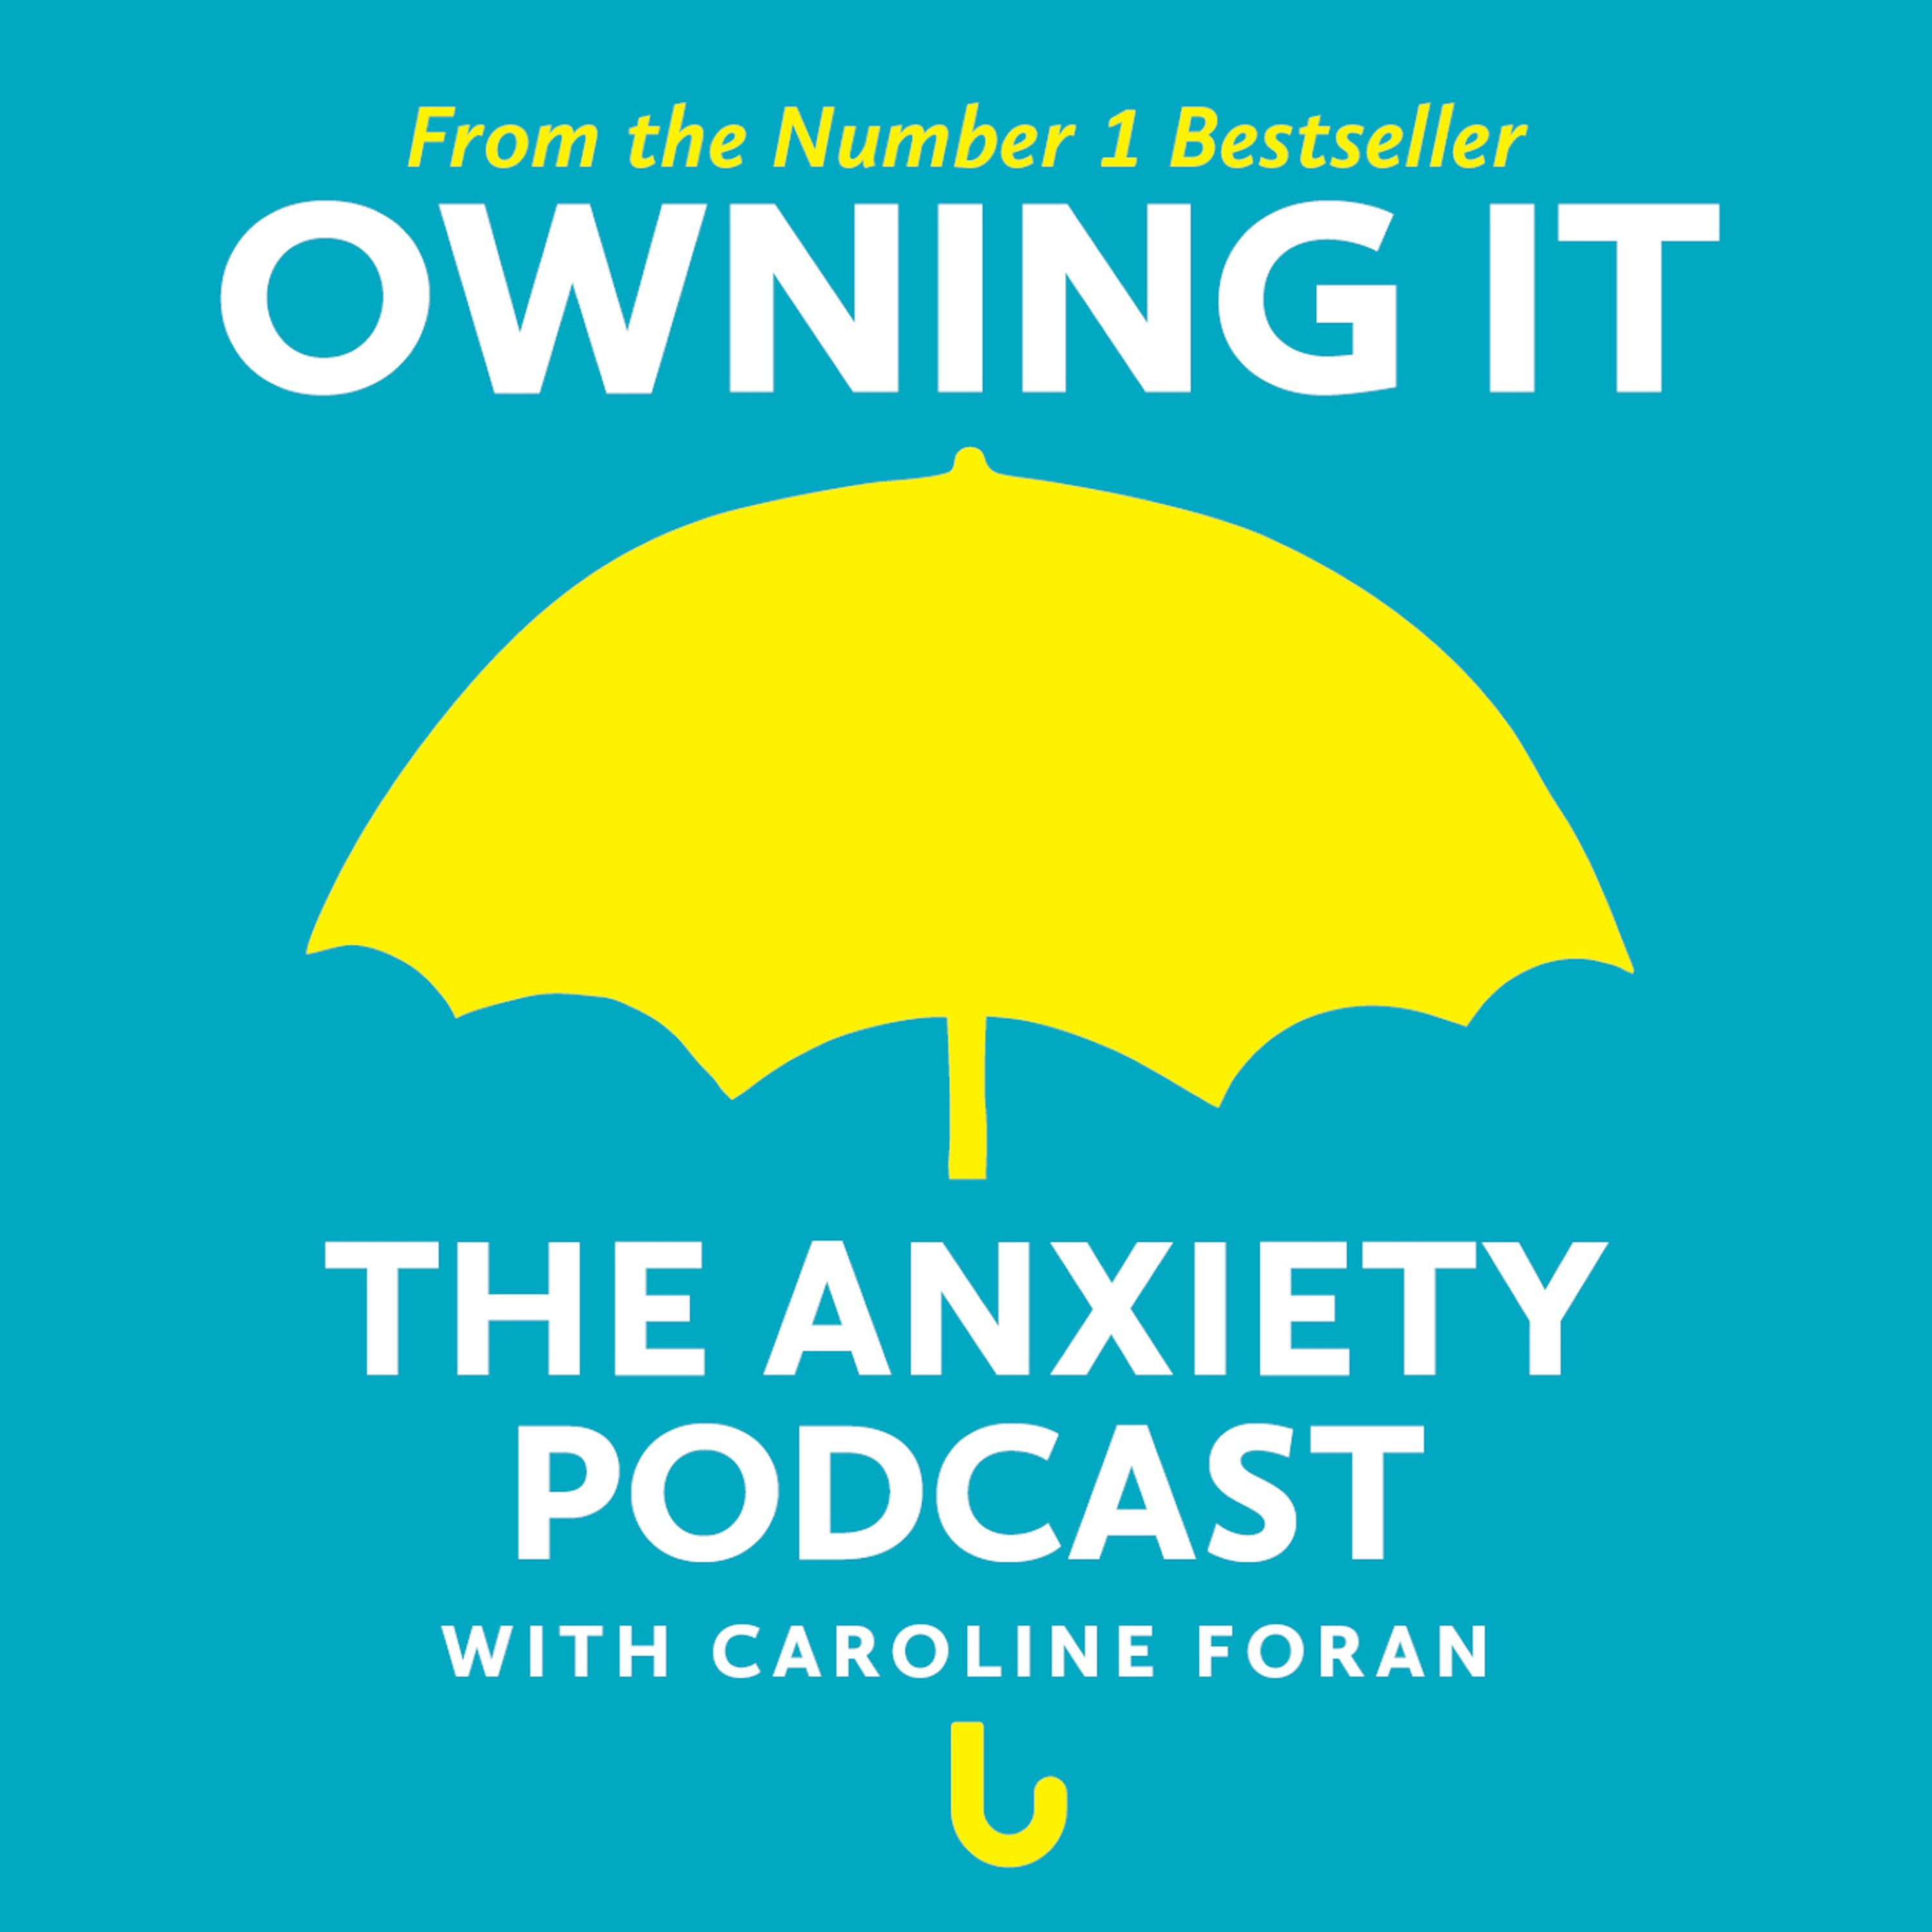 Owning It: Men, Performance Anxiety and Reducing the Stigma with Ryan Tubridy